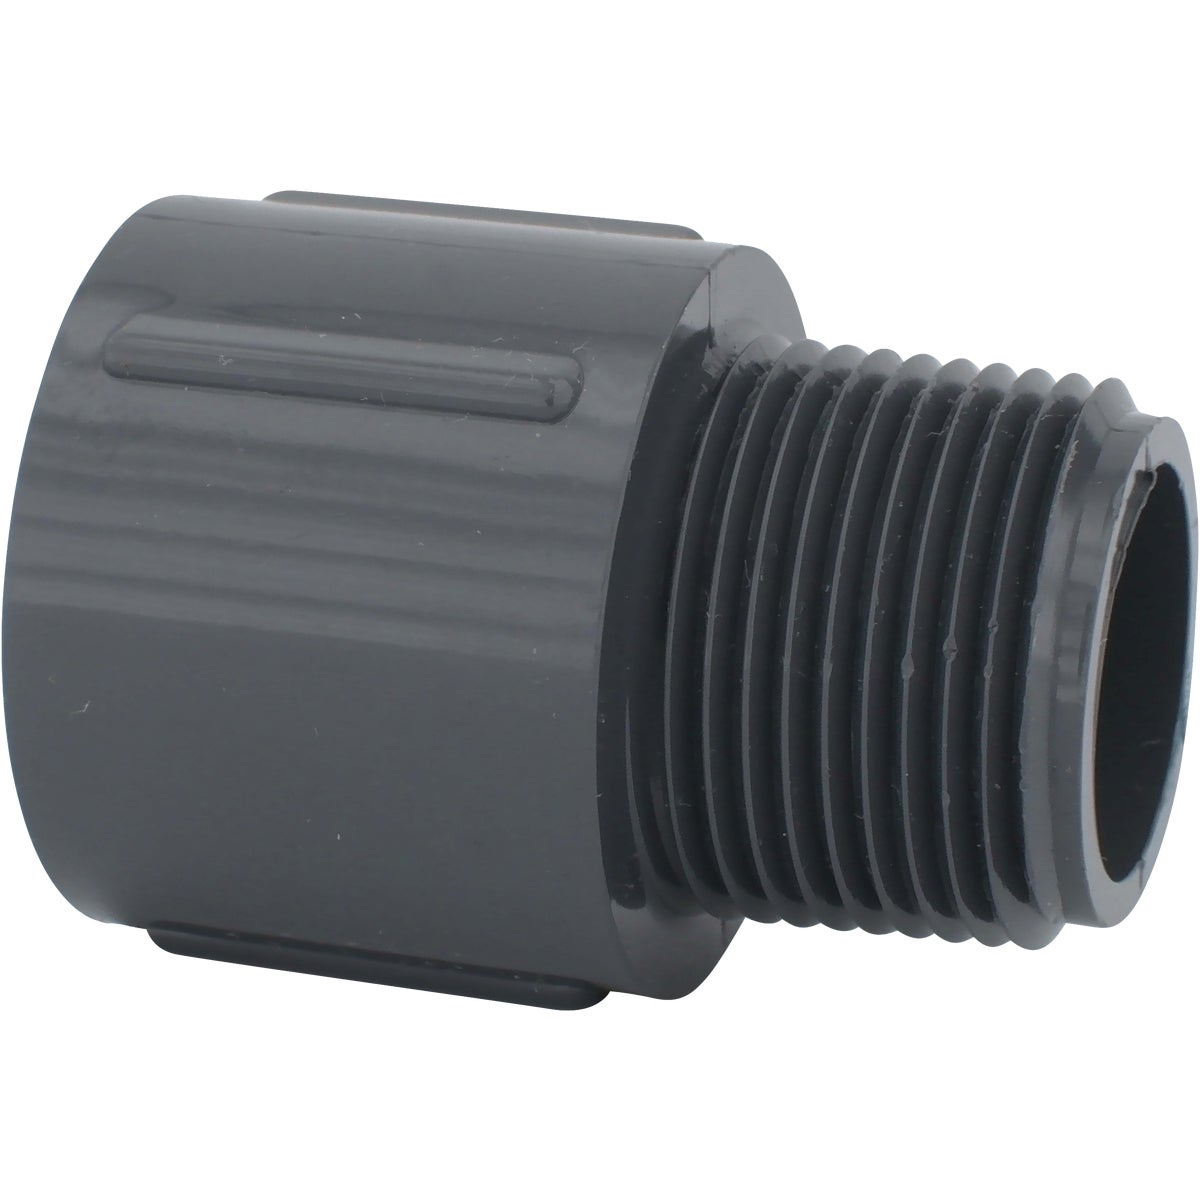 "1"" SCH80 MALE ADAPTER - 304108 by Genova Inc"